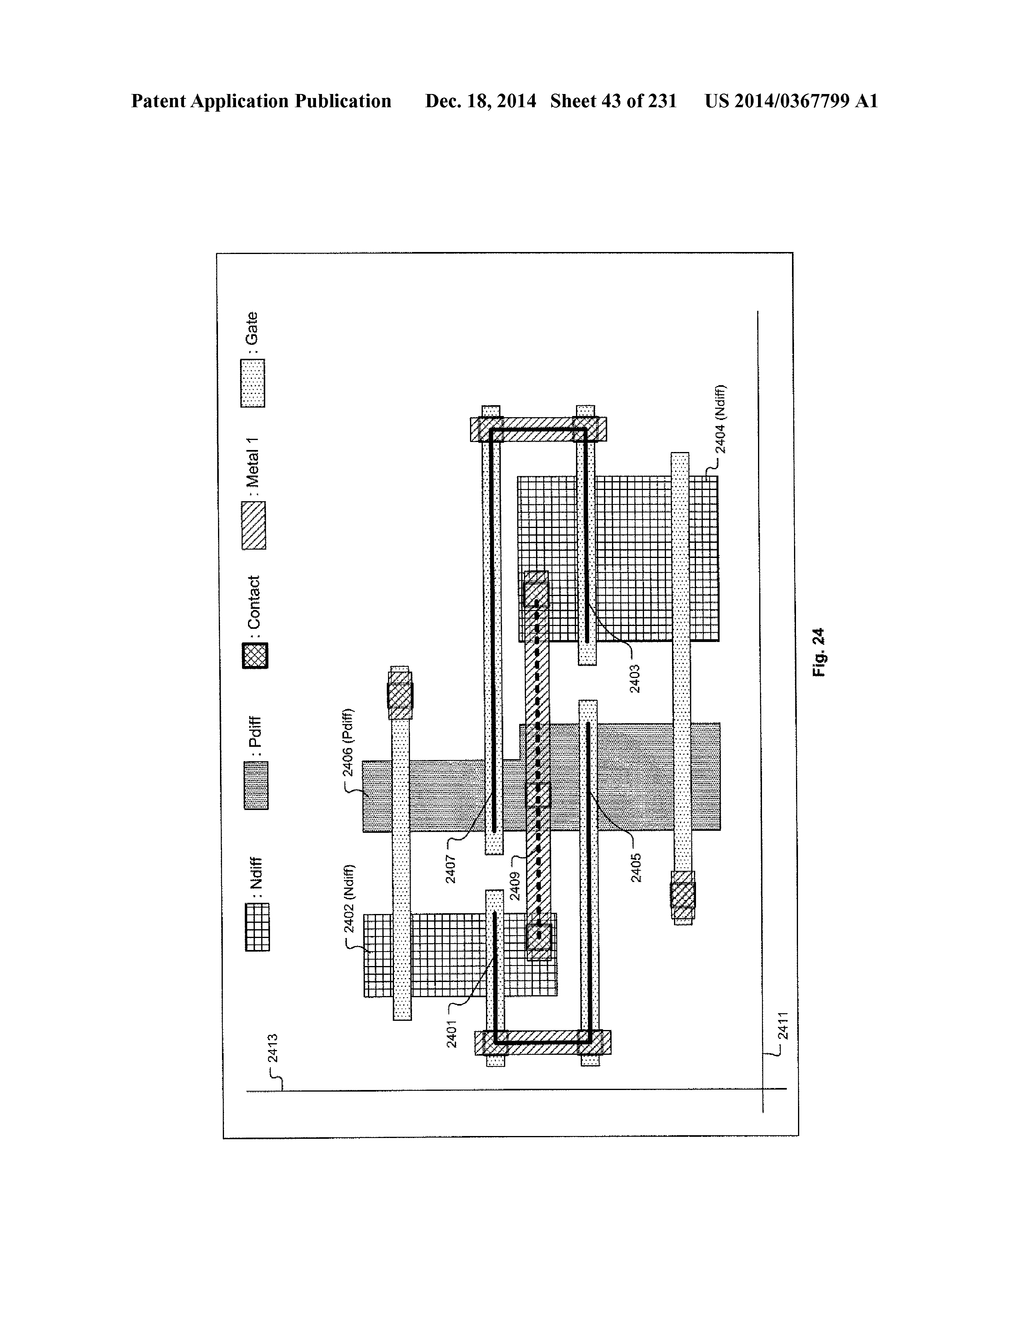 Semiconductor Chip Including Digital Logic Circuit At Circuits Using Gates Least Nine Linear Shaped Conductive Structures Collectively Forming Gate Electrodes Of